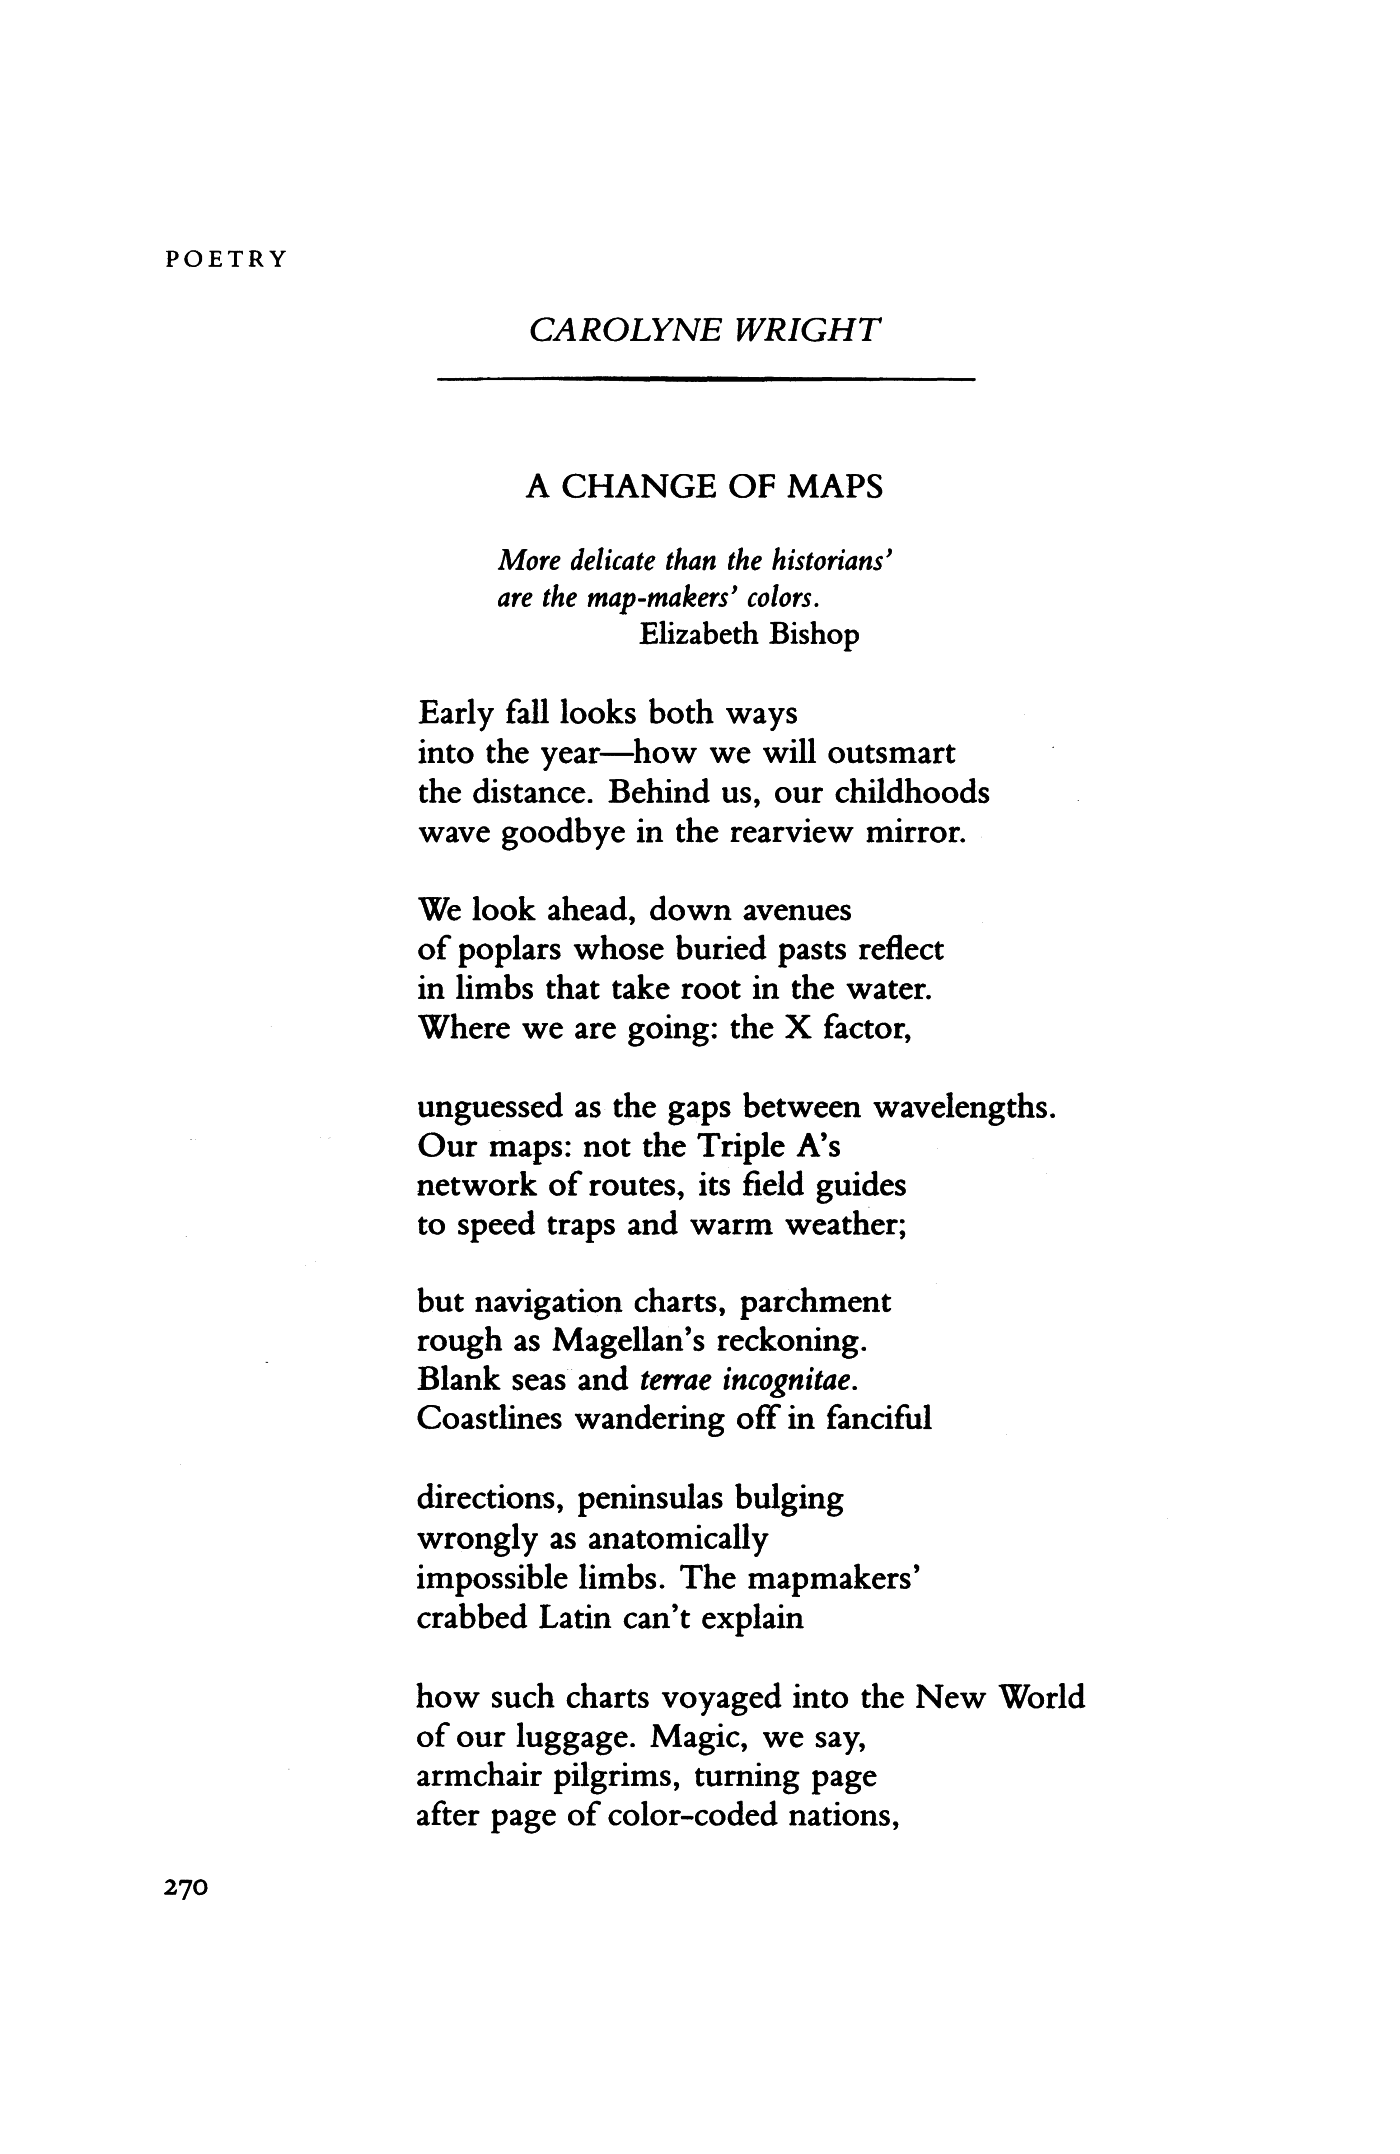 A Change of Maps by Carolyne Wright | Poetry Magazine